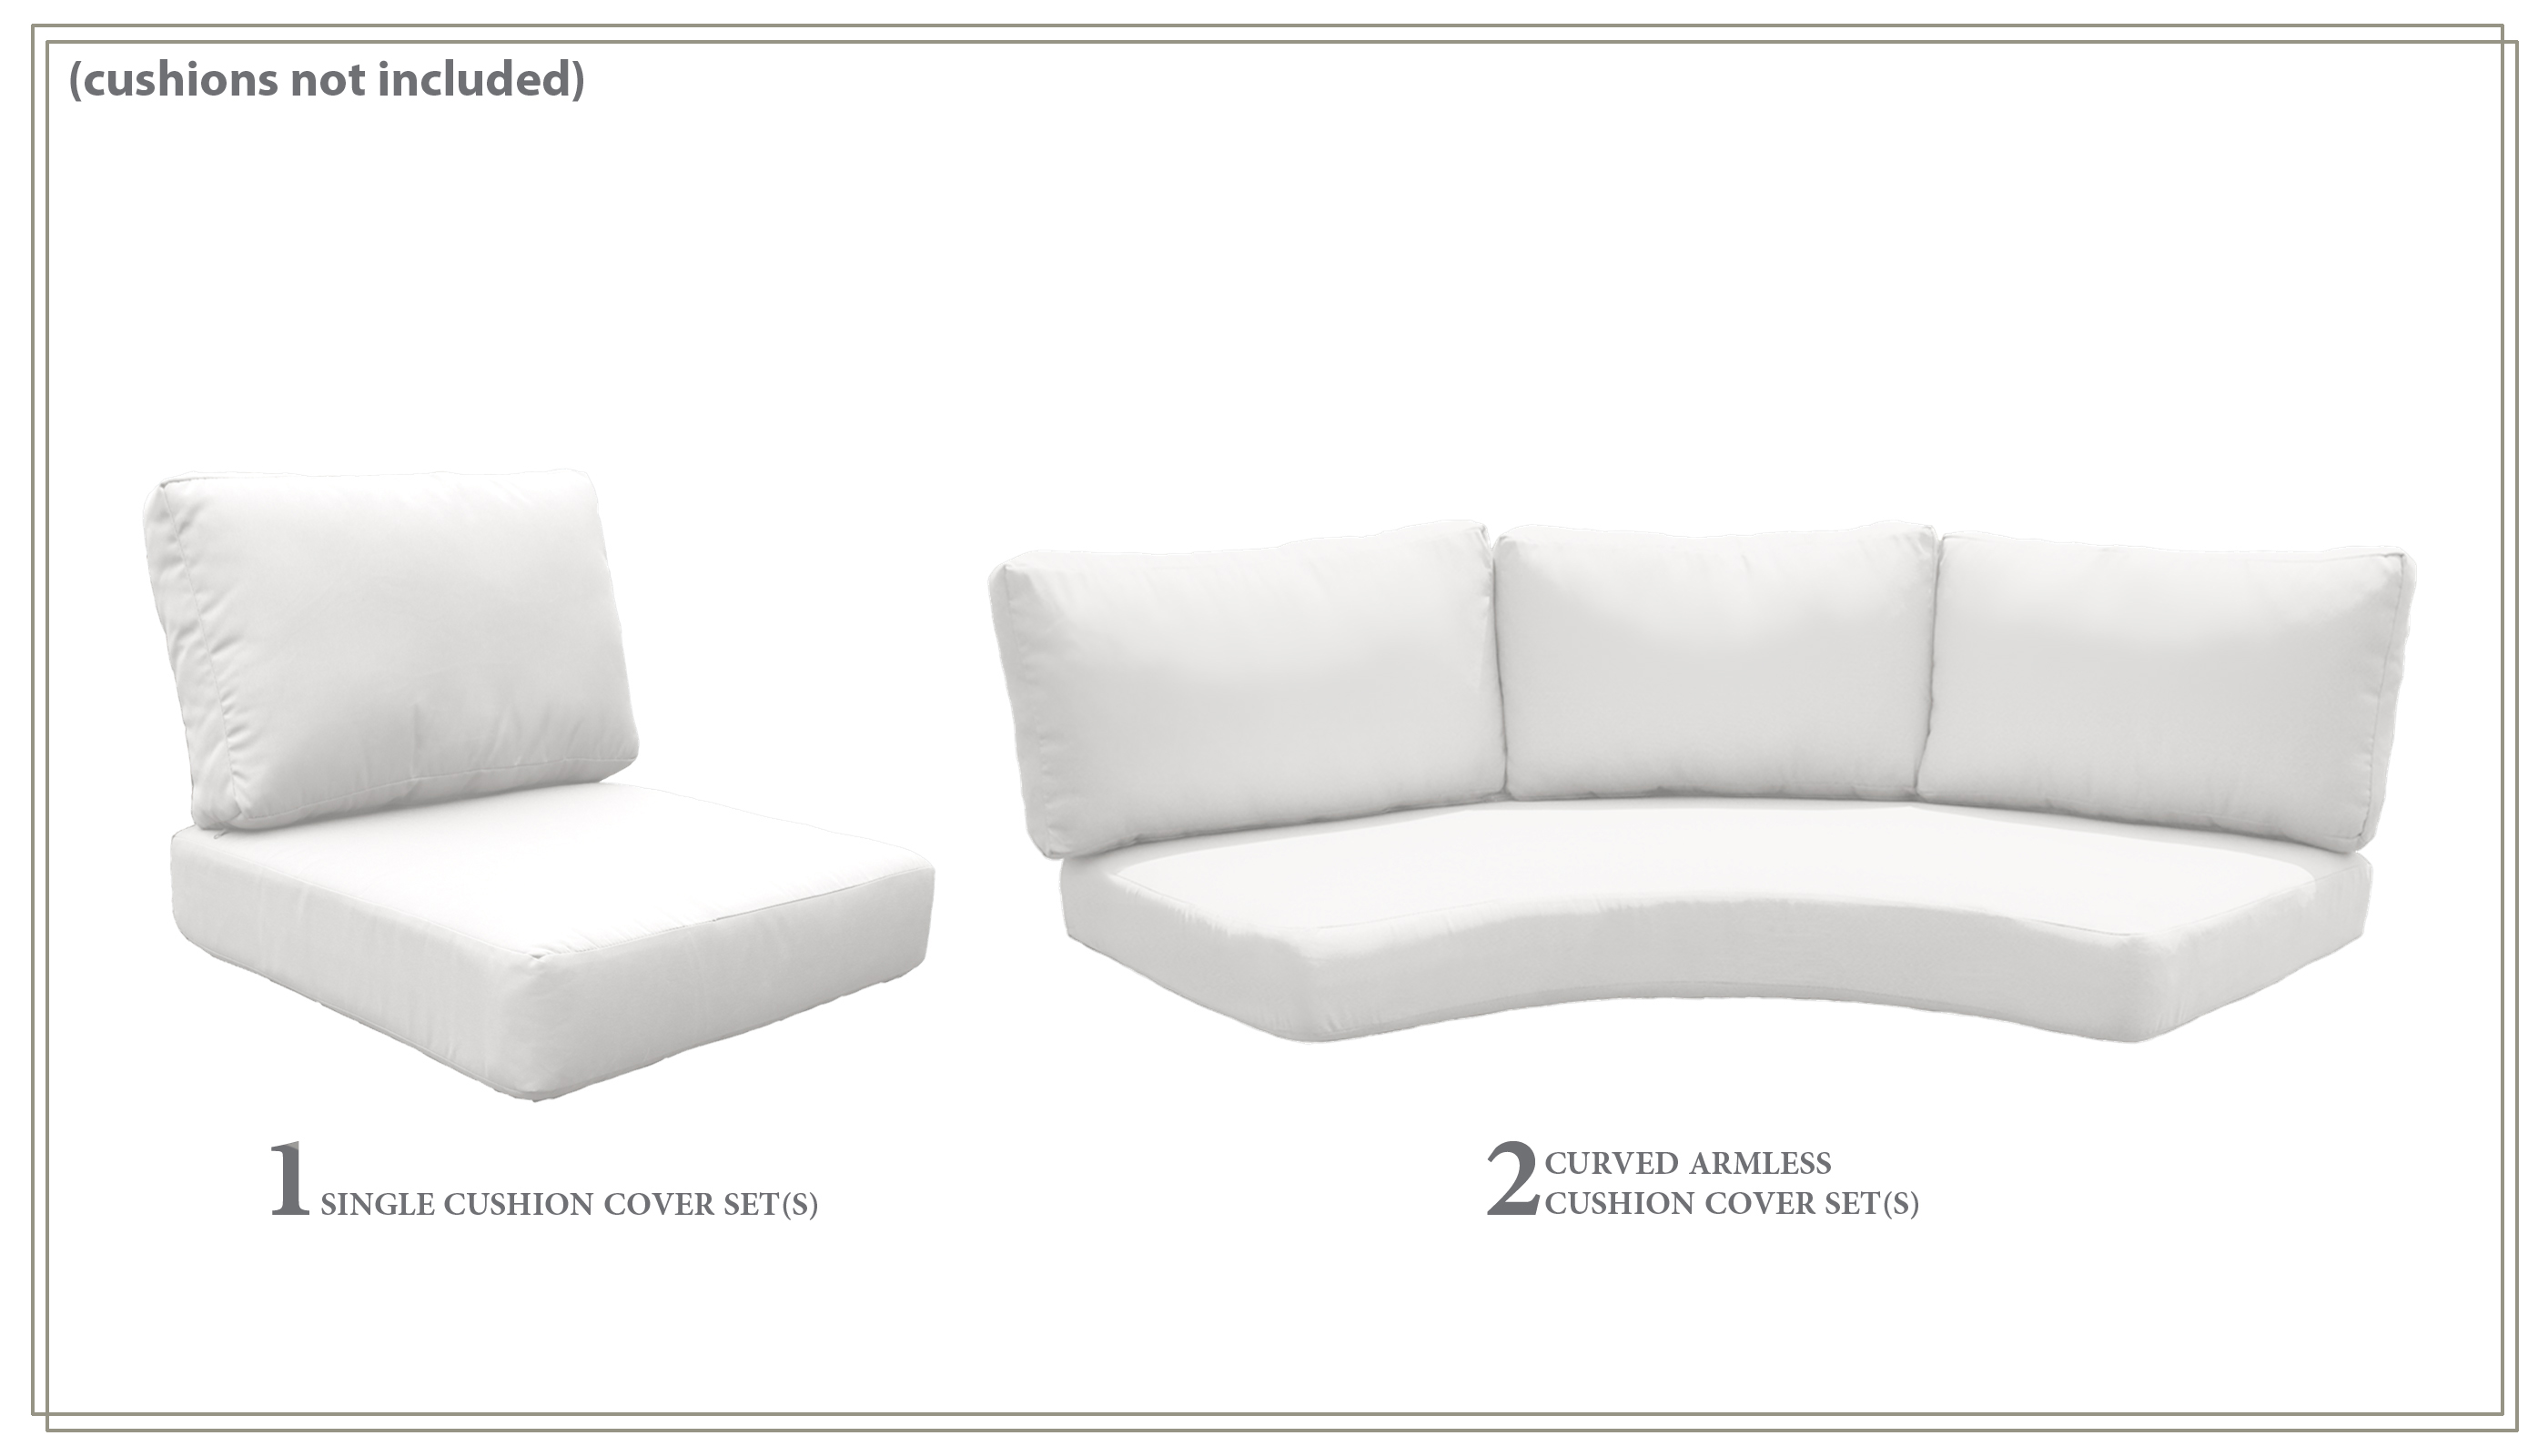 High Back Cover Set for BERMUDA-06a - Design Furnishings